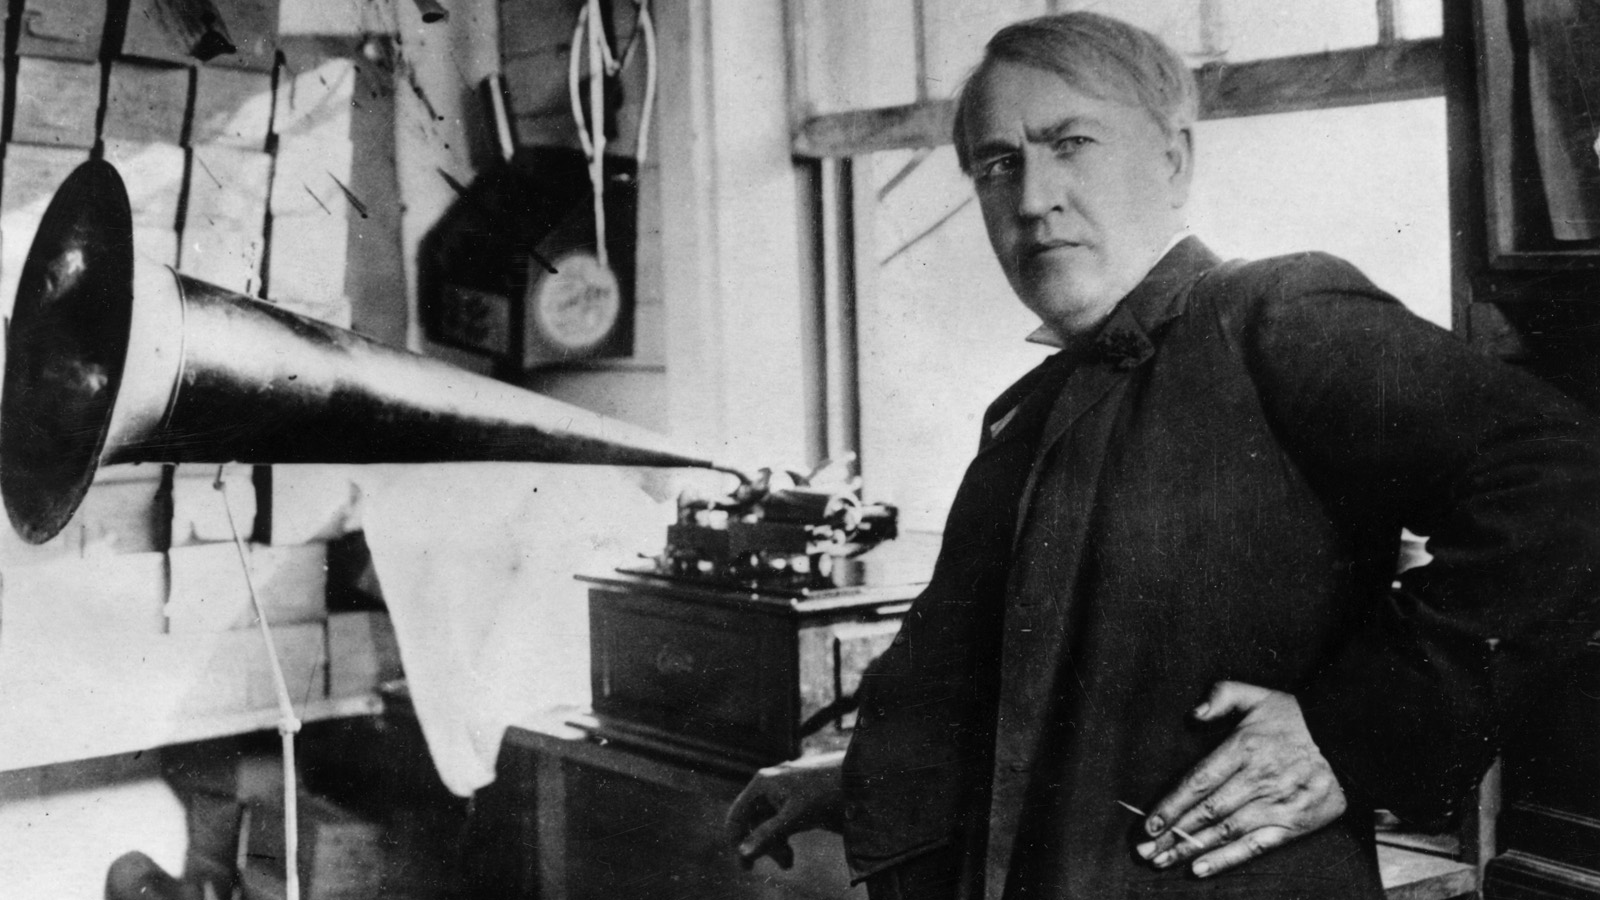 Thomas Edison wallpaper 1600x900 65204 1600x900